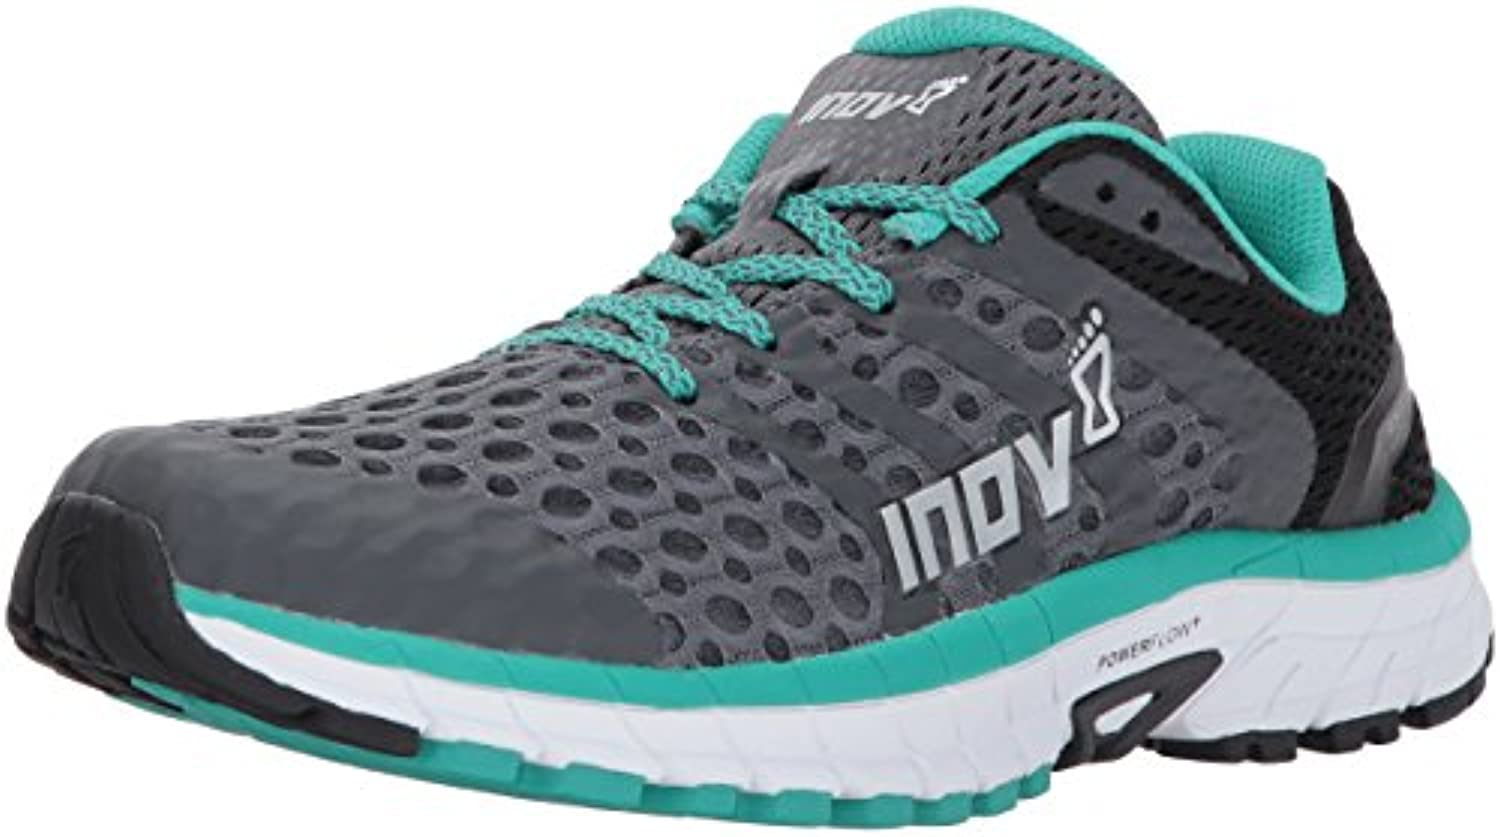 Inov8 Road Claw 275 V2 Women's Zapatillas para Correr - SS18